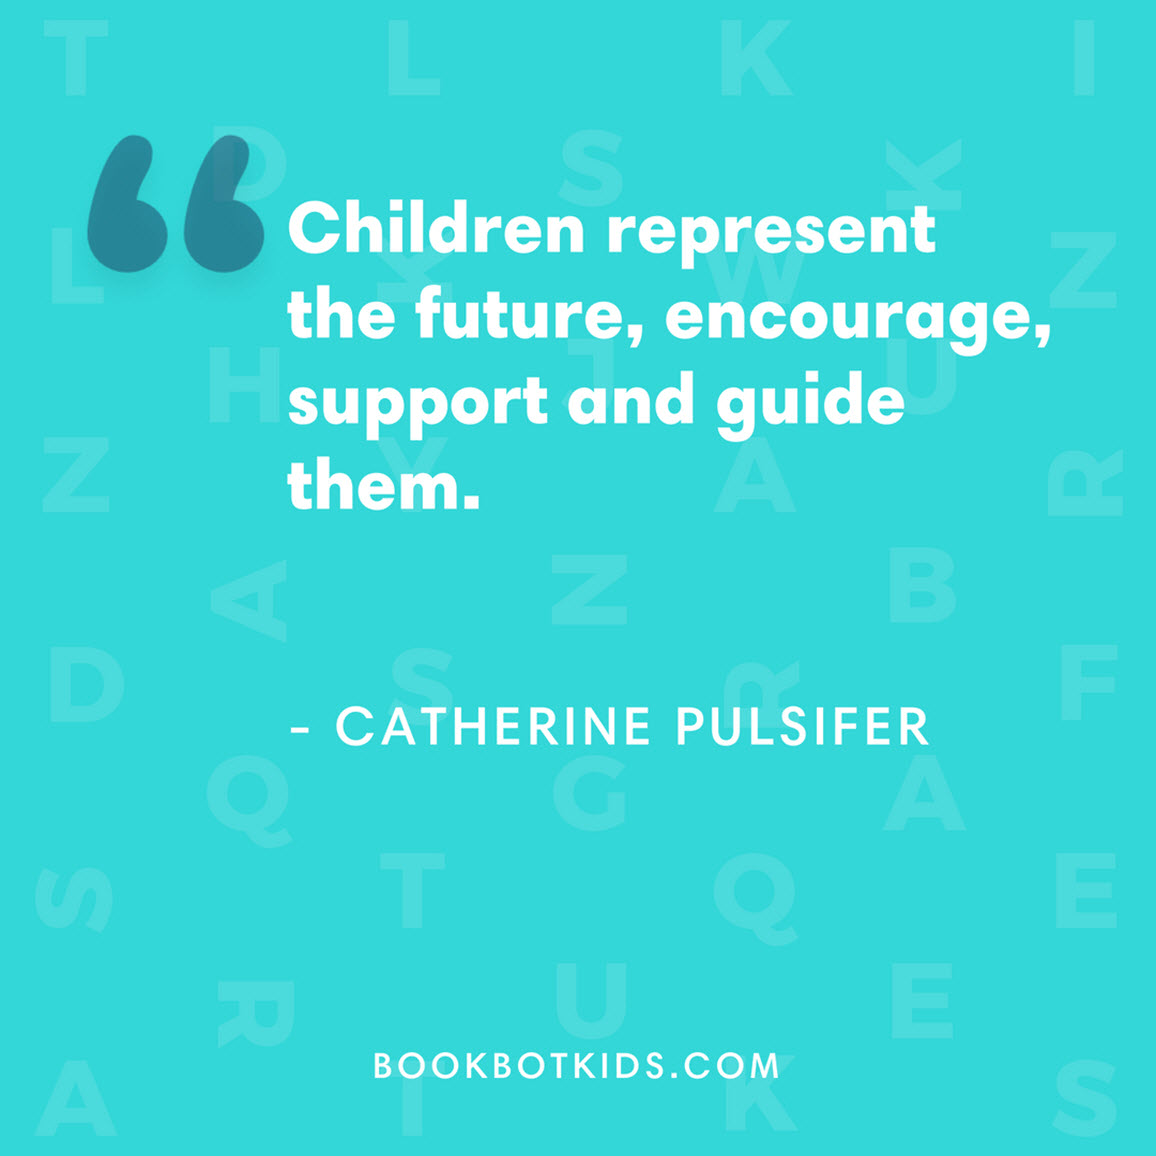 Children represent the future, encourage, support and guide them. – Catherine Pulsifer